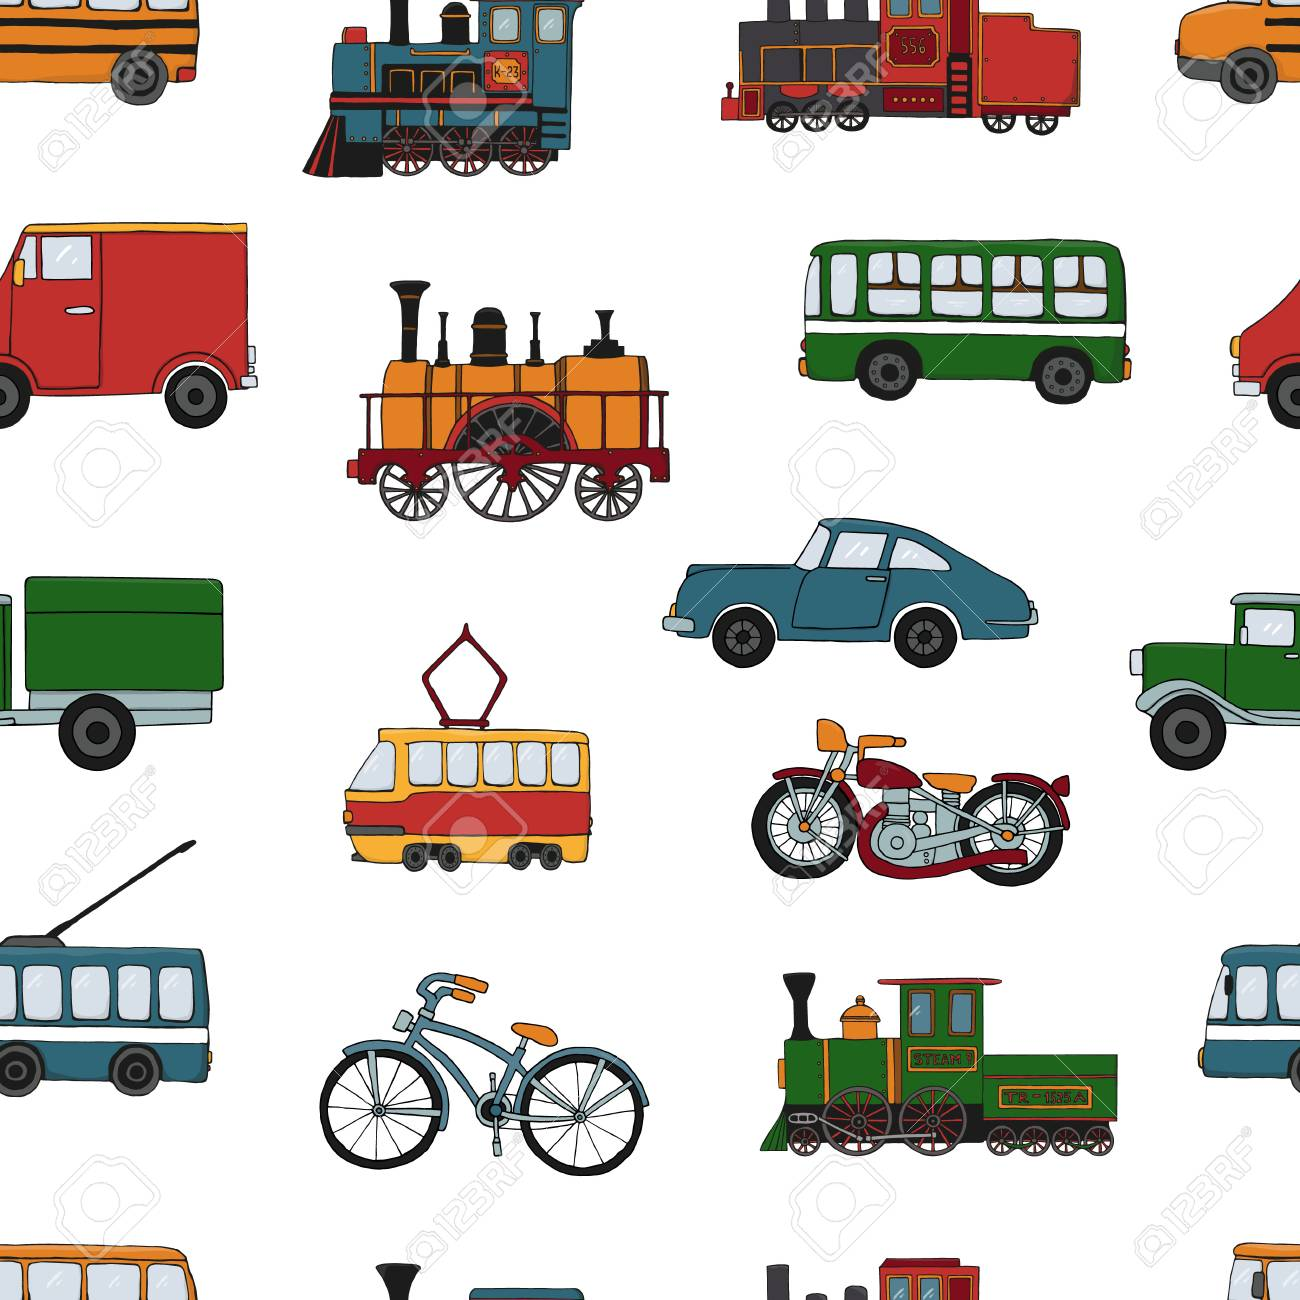 Vector colored seamless pattern of retro engines and transport. Vector repeat background of vintage trains bus, tram, trolleybus, car, bicycle, bike, van, truck isolated on white background. Cartoon style endless illustration of old means of transport for children - 126718485